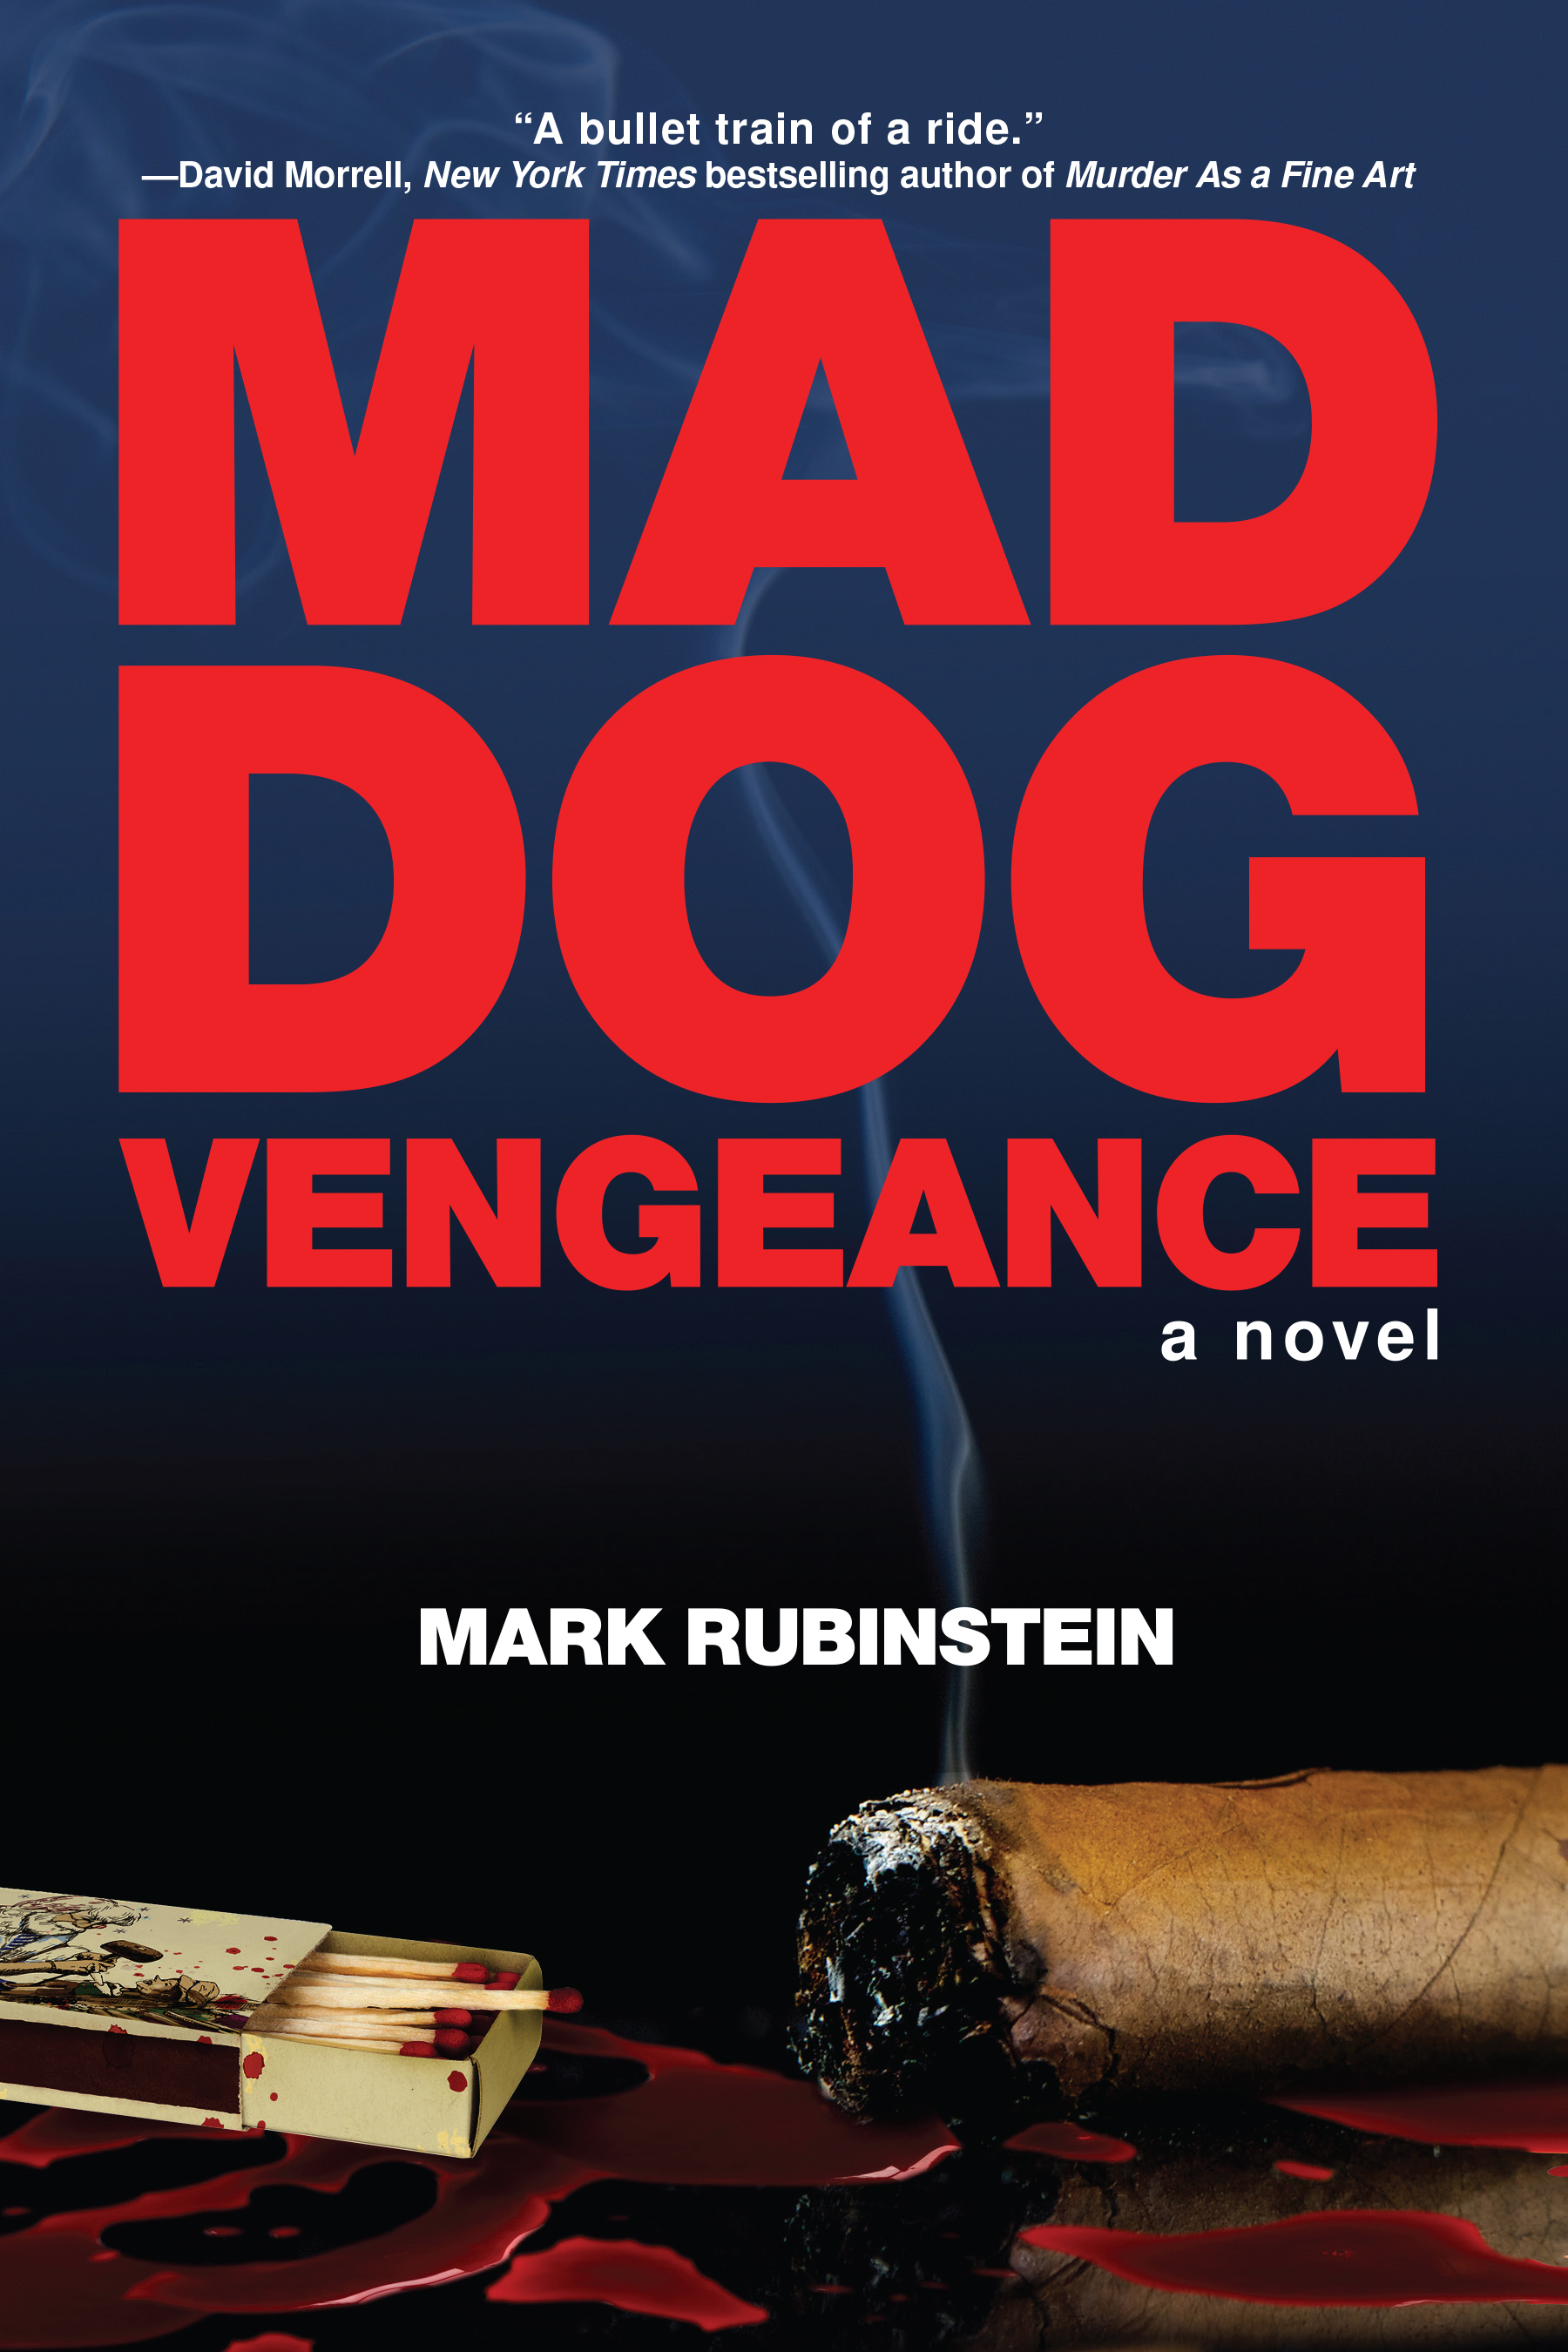 MadDogVengence_Cover_Final_withquote_8217.jpg